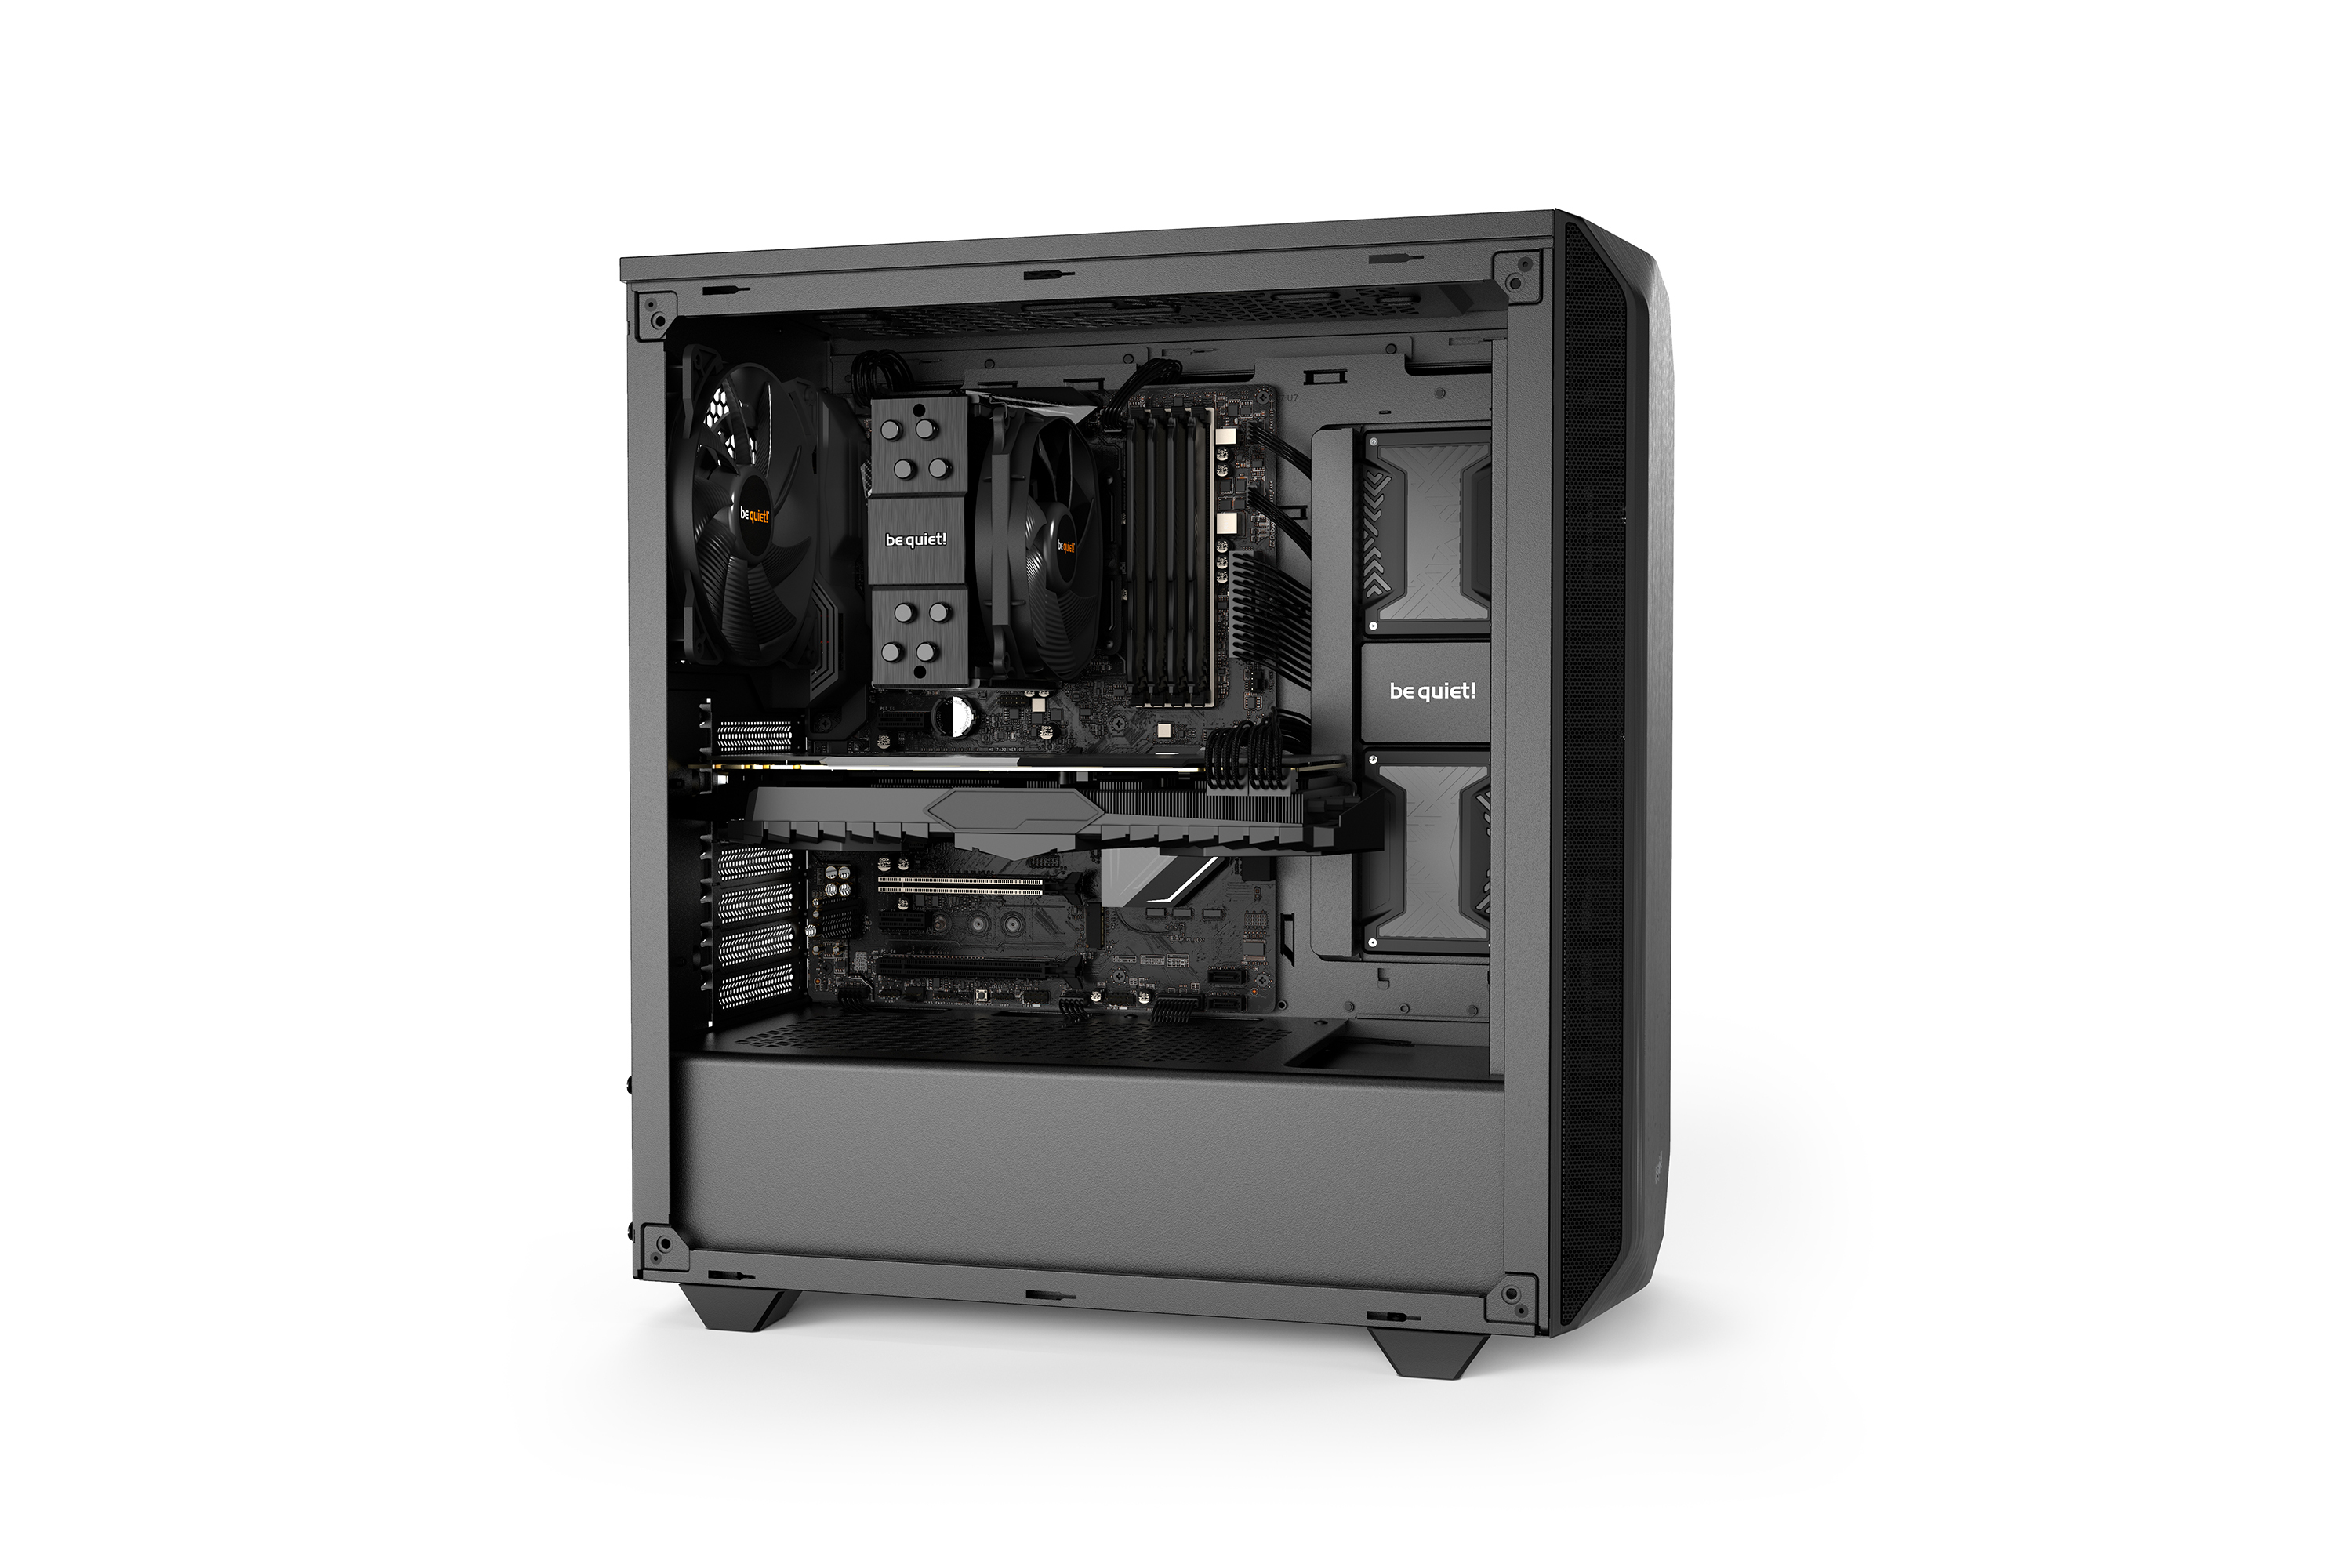 be quiet! Pure Base 500 Black, 450 x 231 x 443, IO-panel 2x USB 3.0, HD Audio, 2x 3,5, 5x 2,5, inc 2x 140 mm Pure Wings 2, Watercooling ready